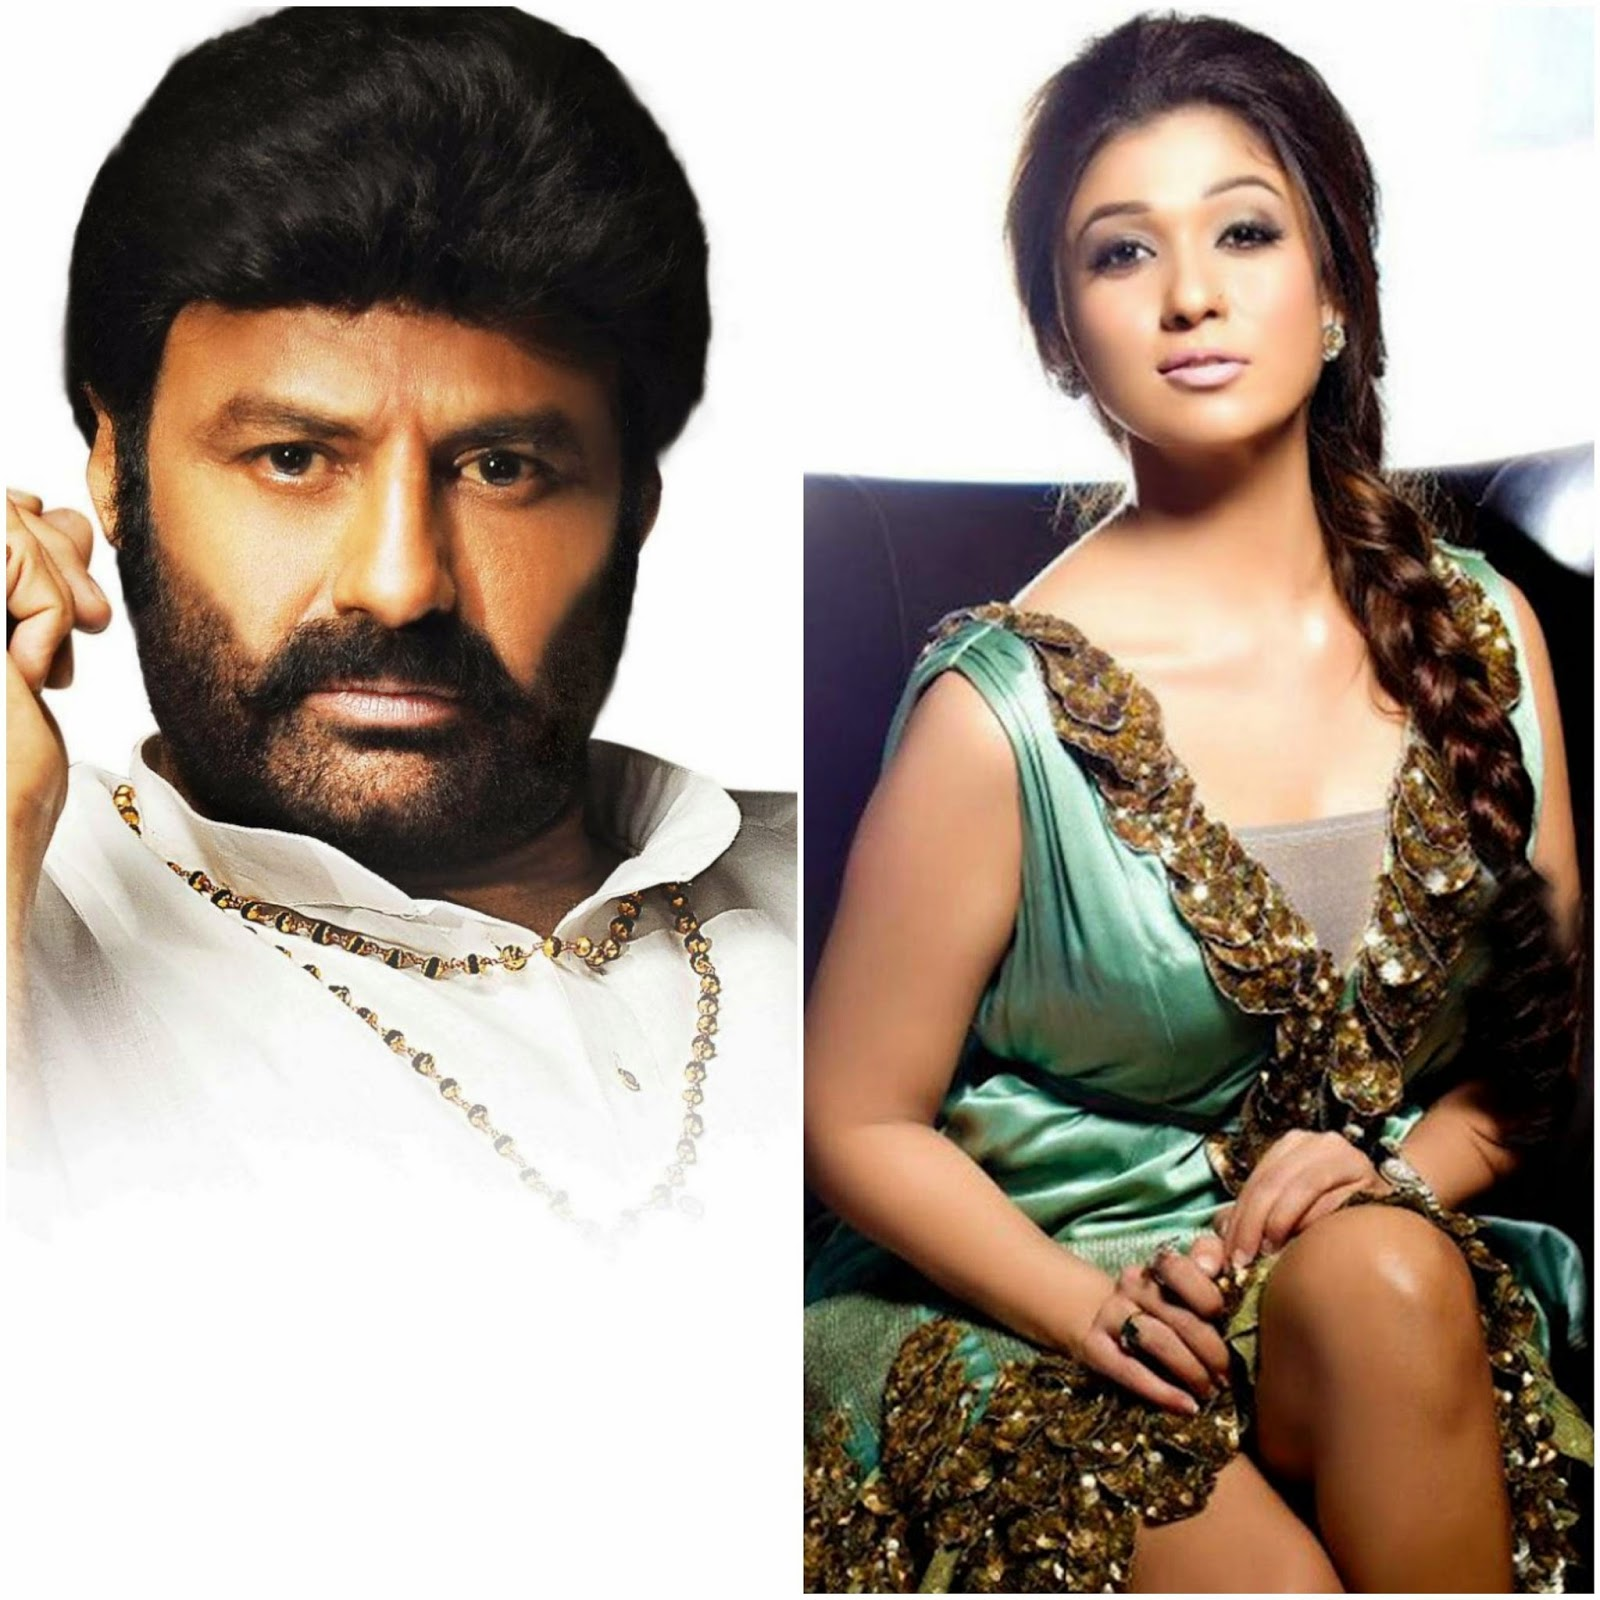 Balakrishna's Dictator Telugu Movie Release on Dussehra